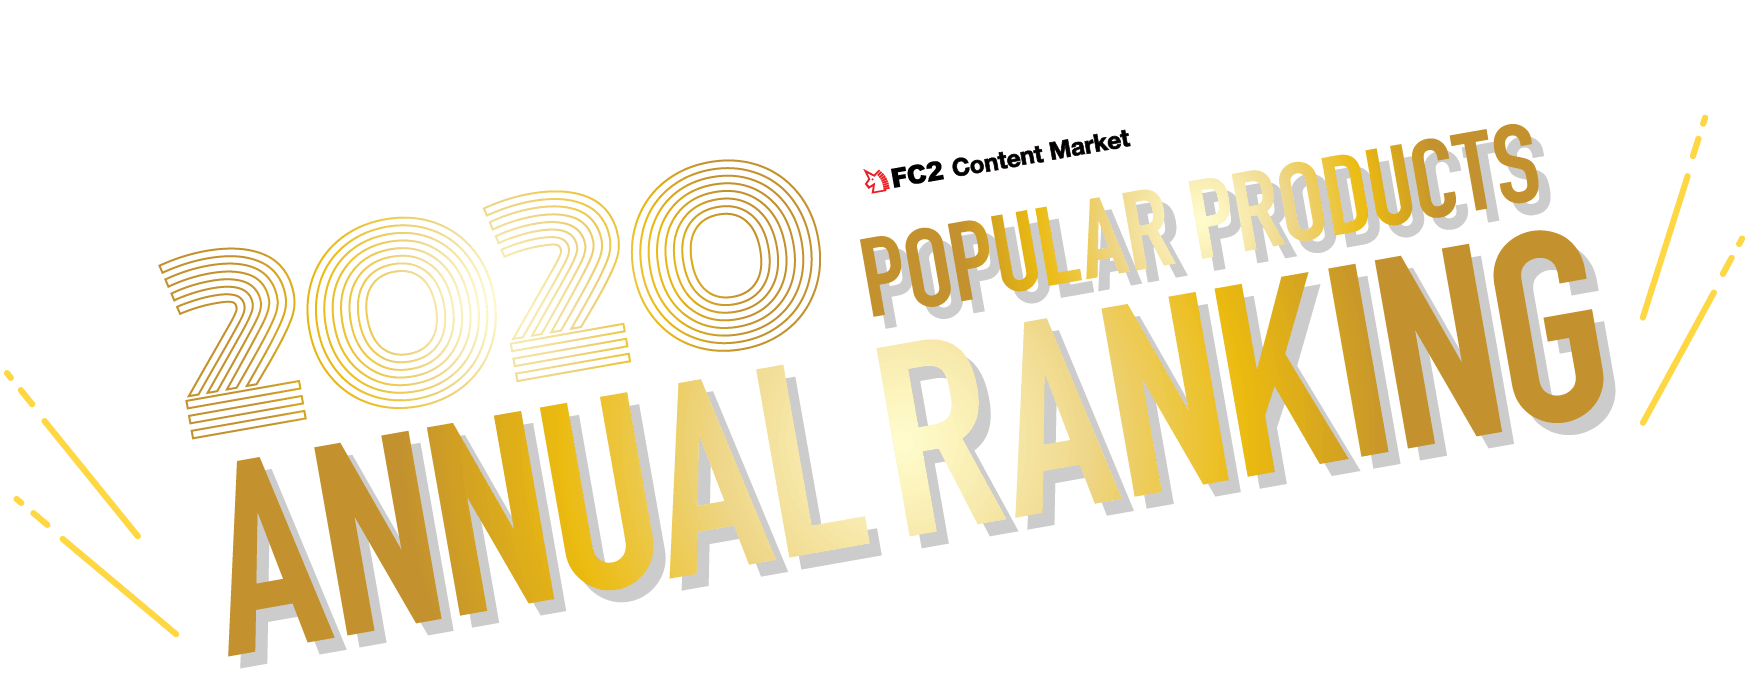 2020 Annual Popular Product Ranking